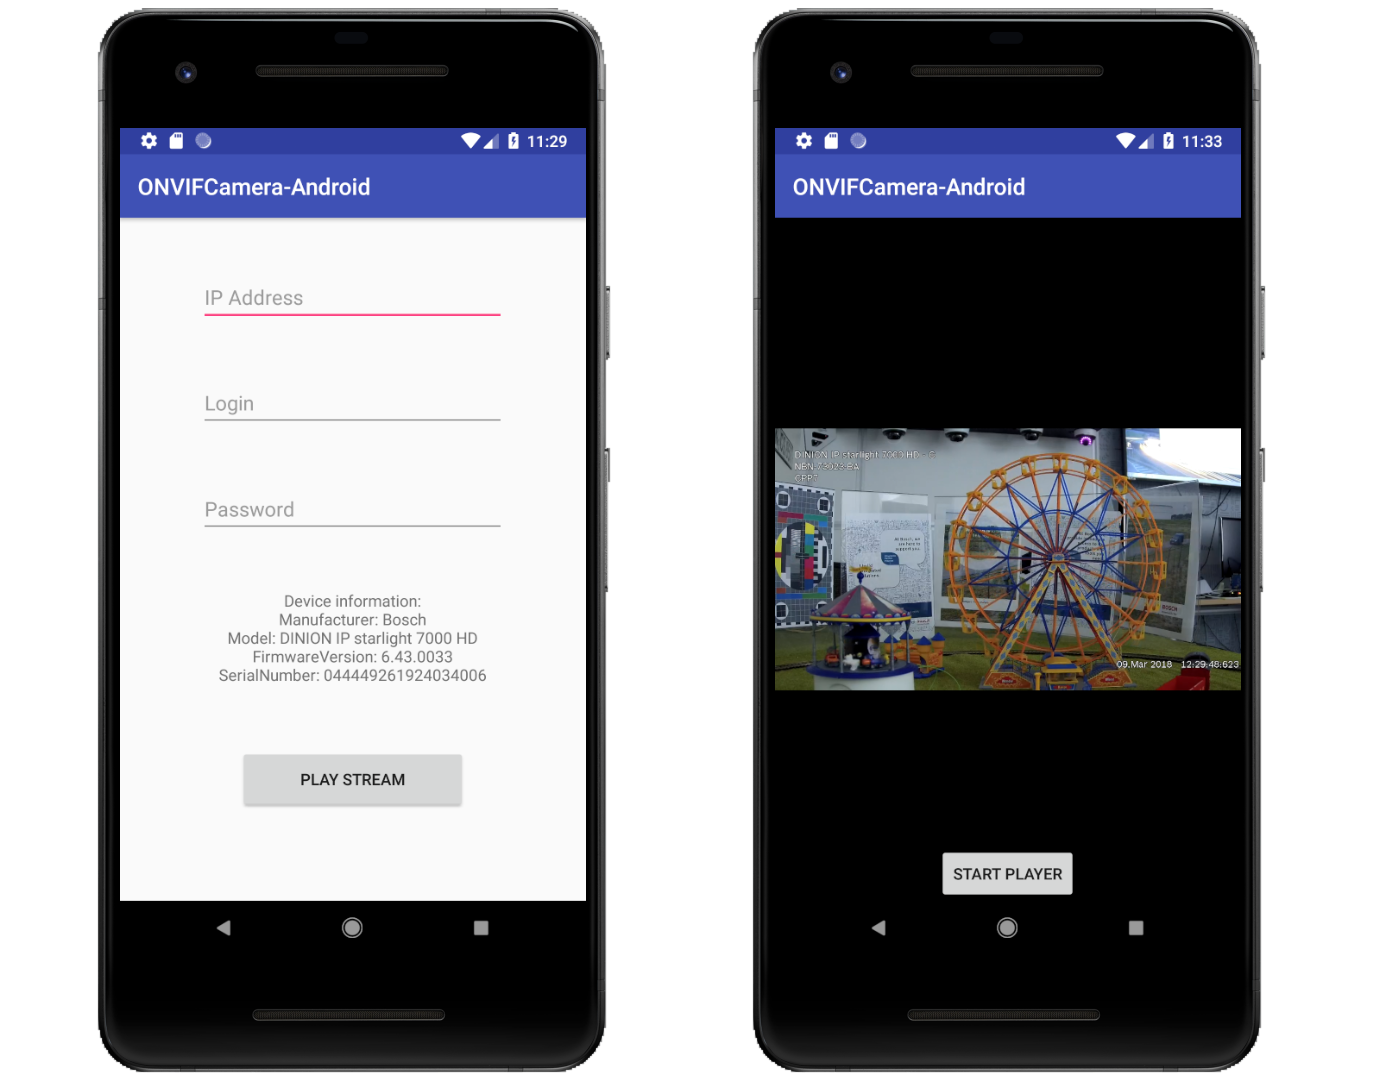 Live stream an ONVIF Camera on your Android app! 📱 - By